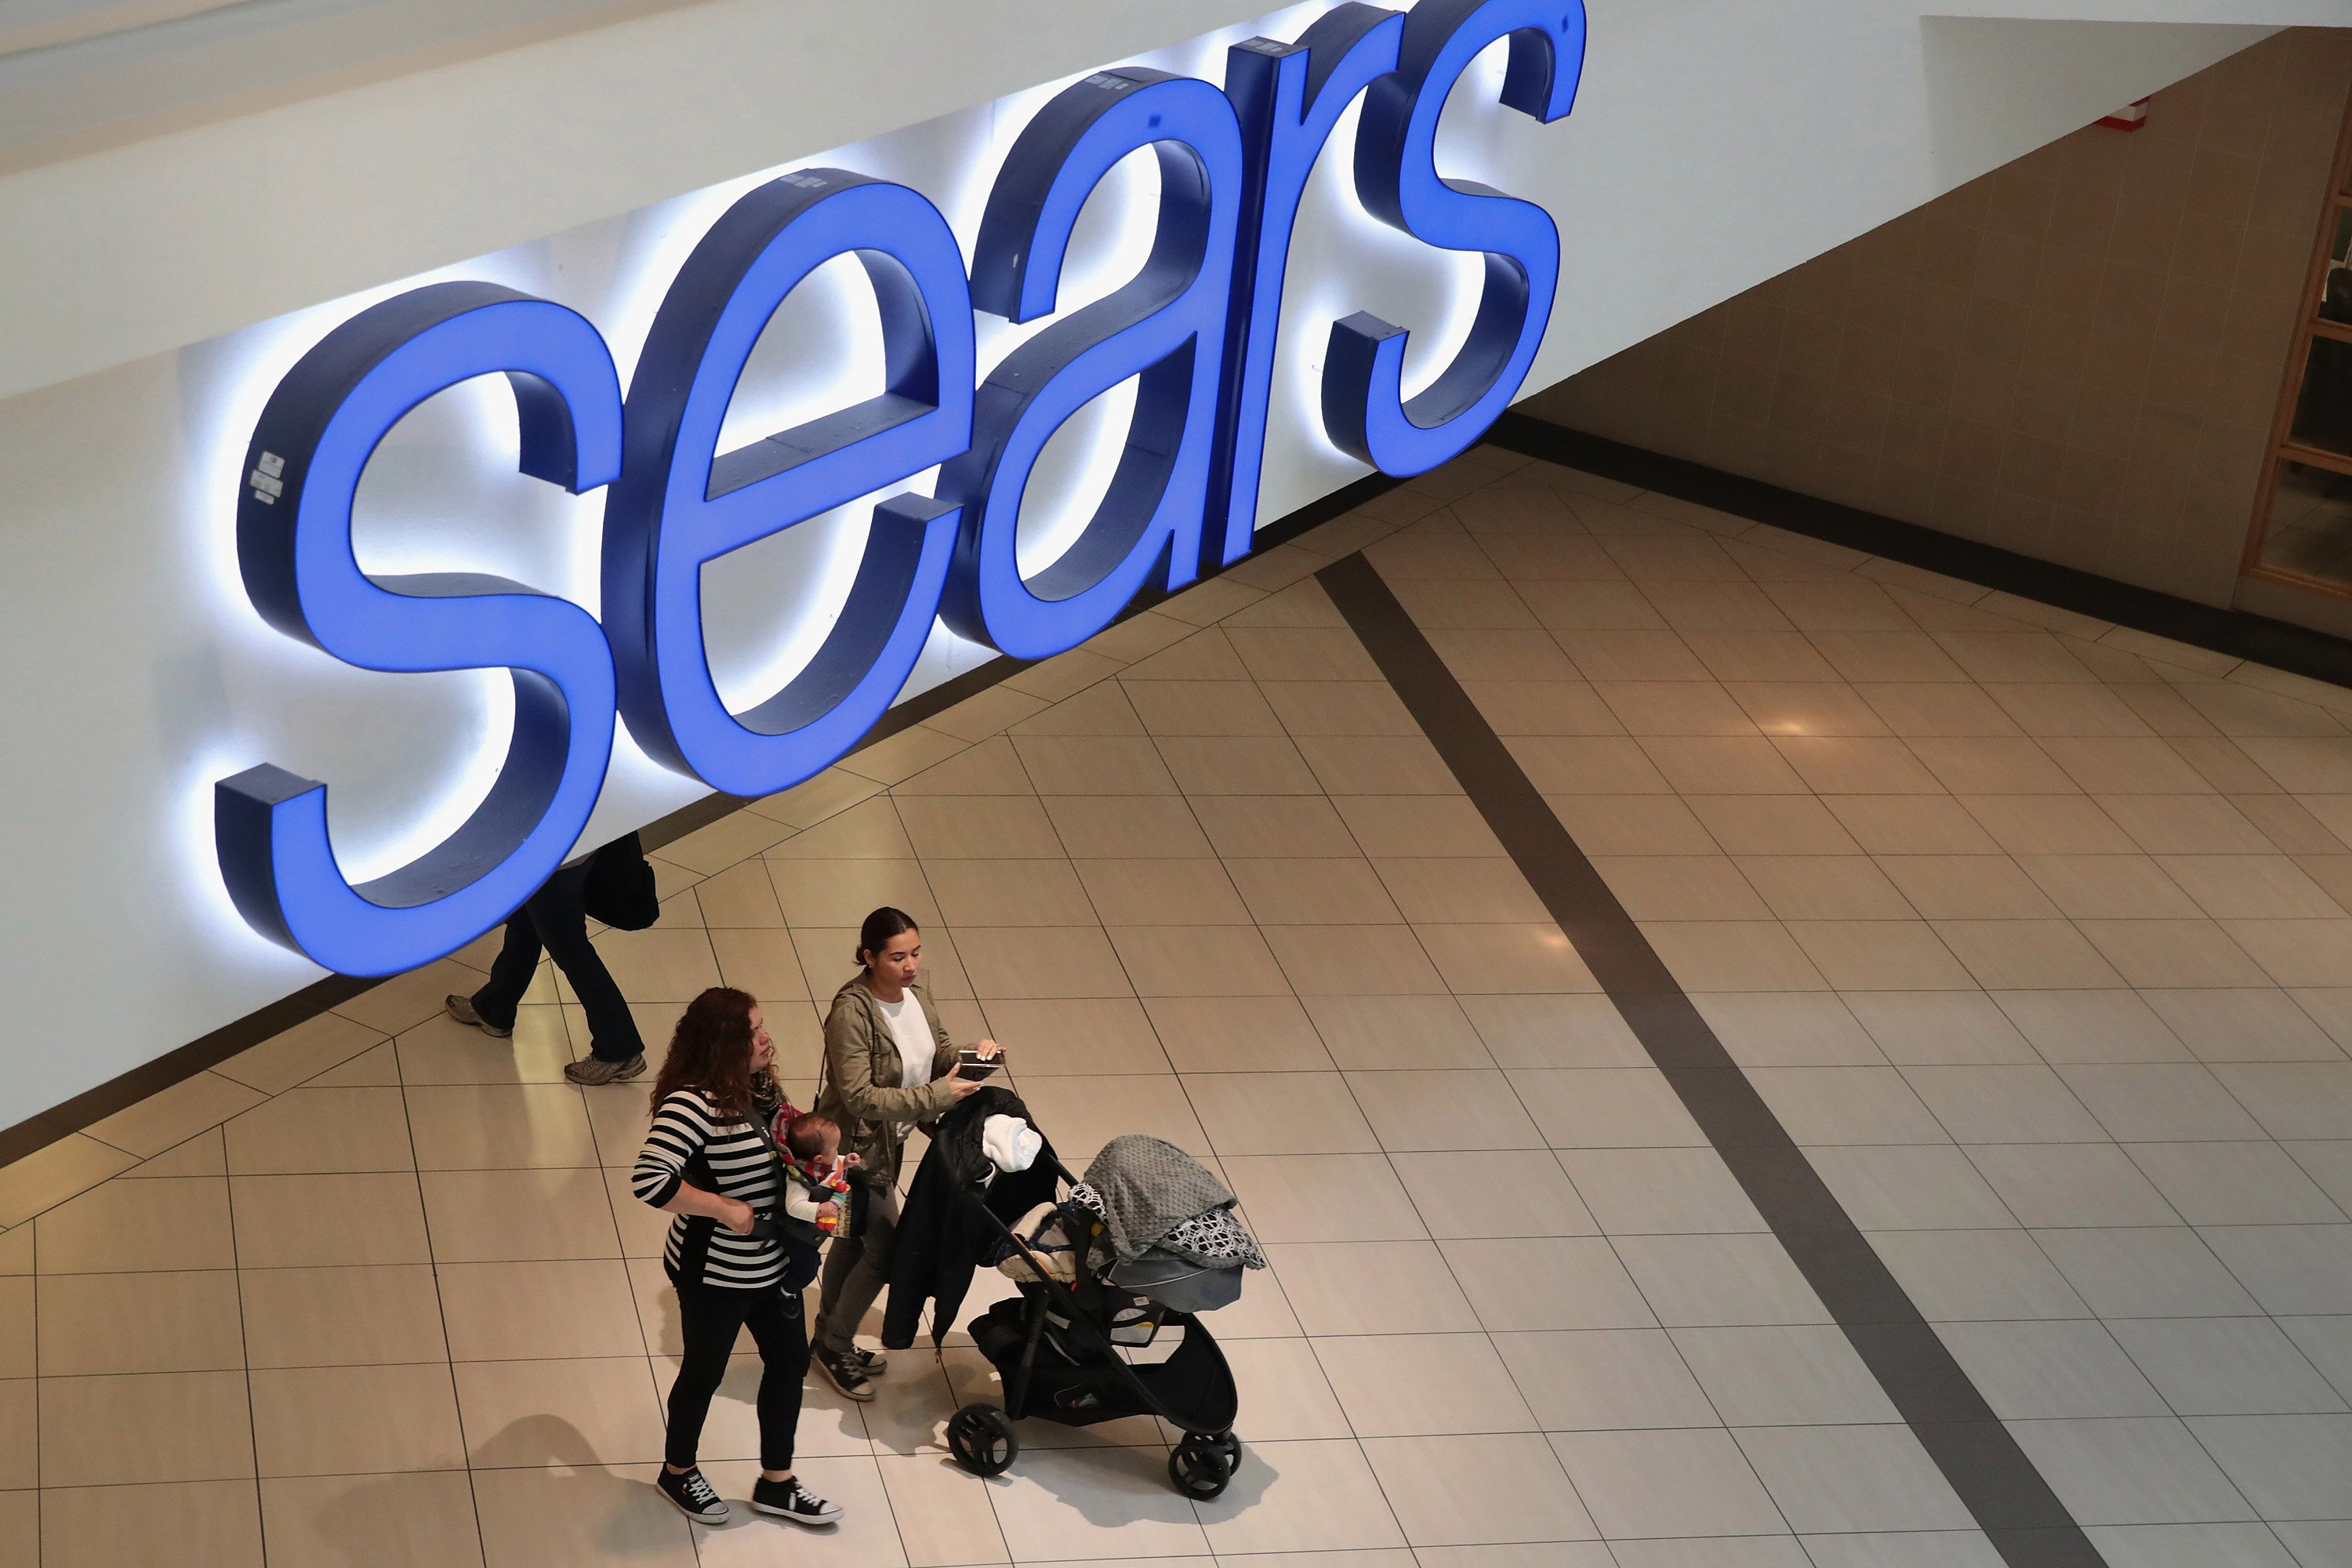 Why Sears stopped running TV ads this holiday season